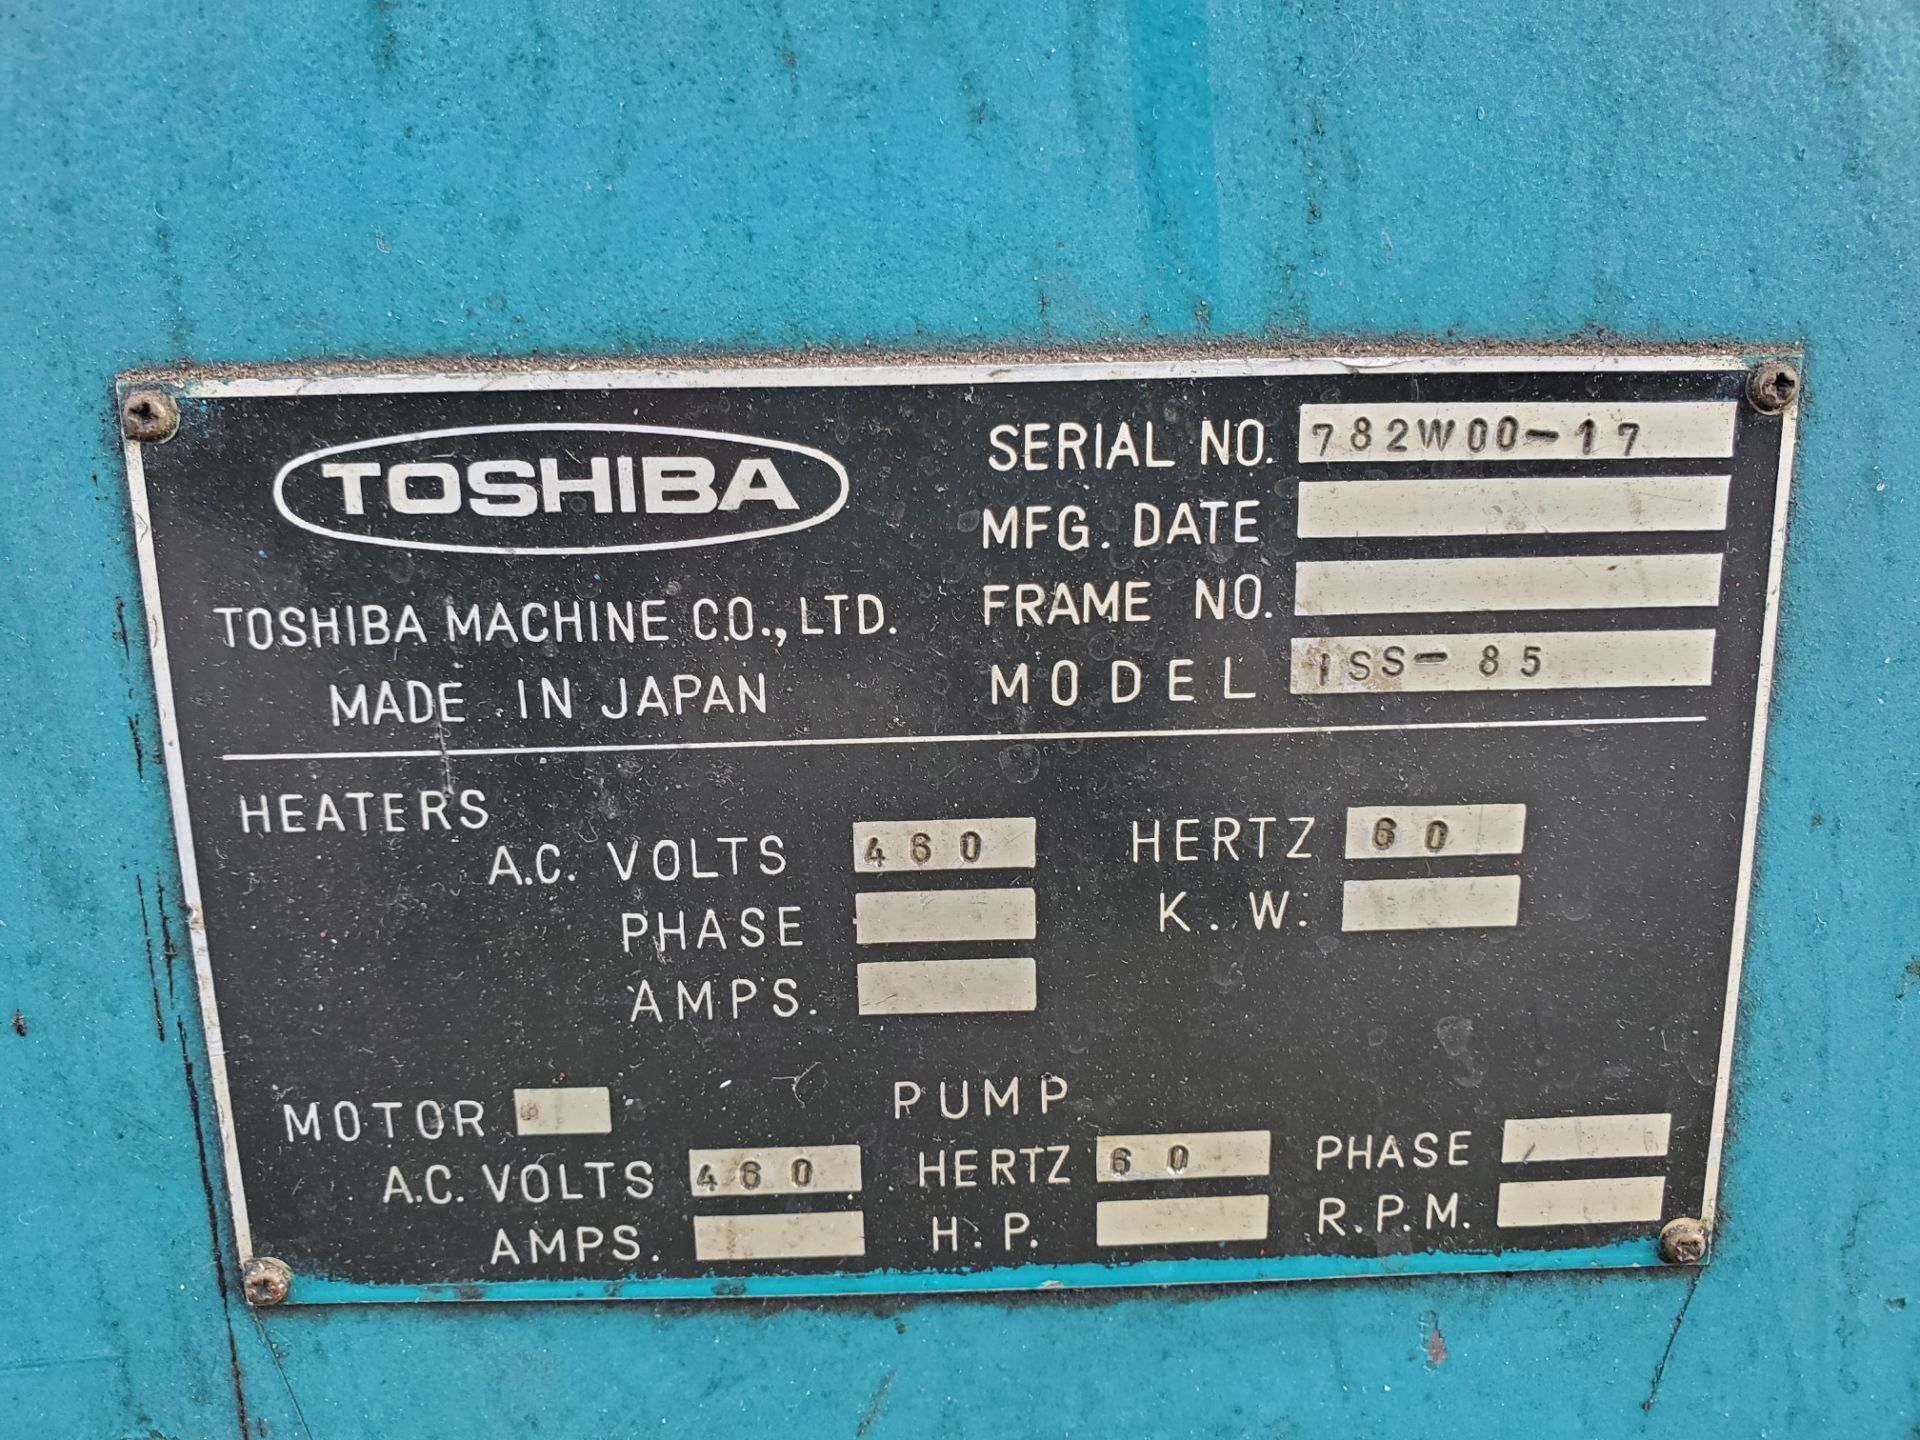 TOSHIBA ISS-85 INJECTION MOLDING MACHINE - Image 3 of 5